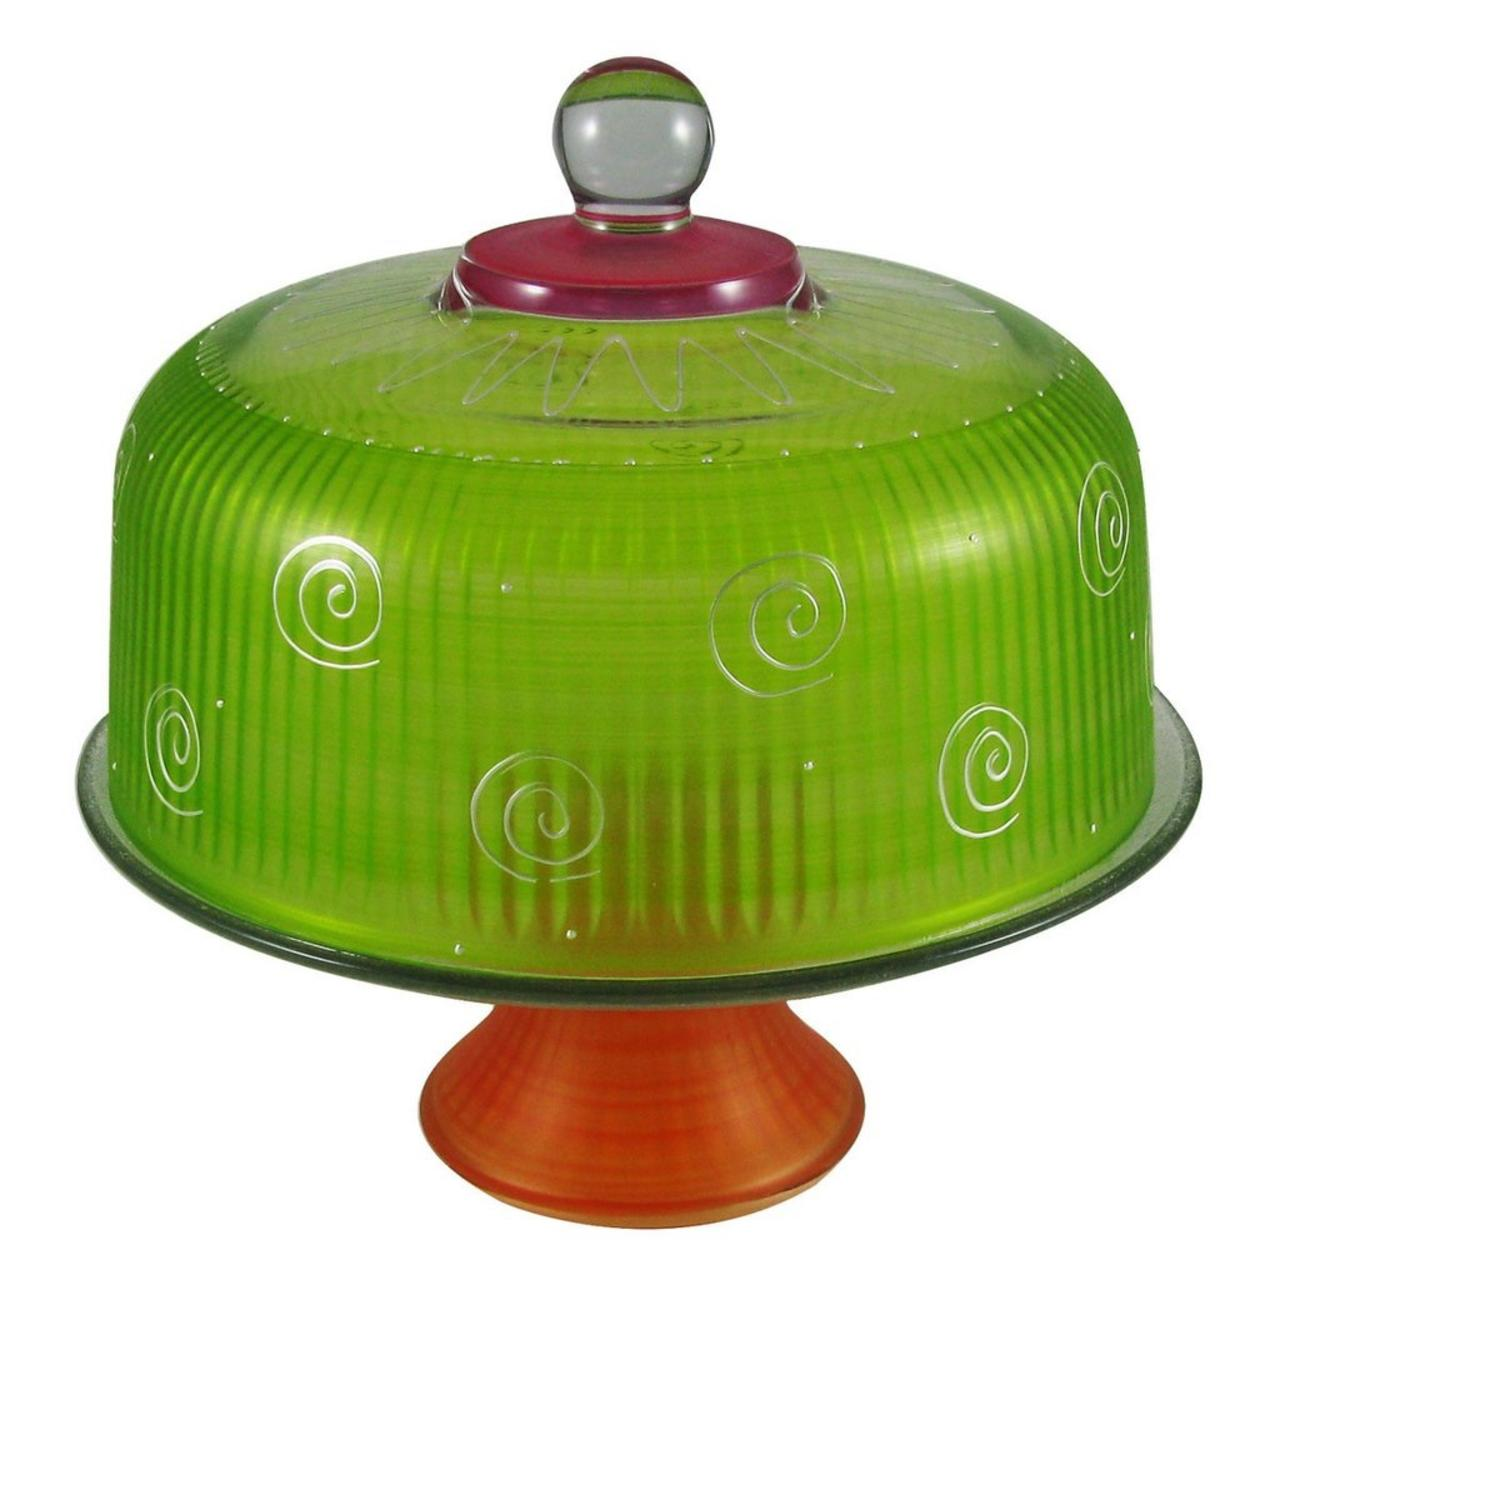 "11"" Frosted Lime Green and Marmalade Hand Painted Multi-Functional Glass Convertible Cake Dome"